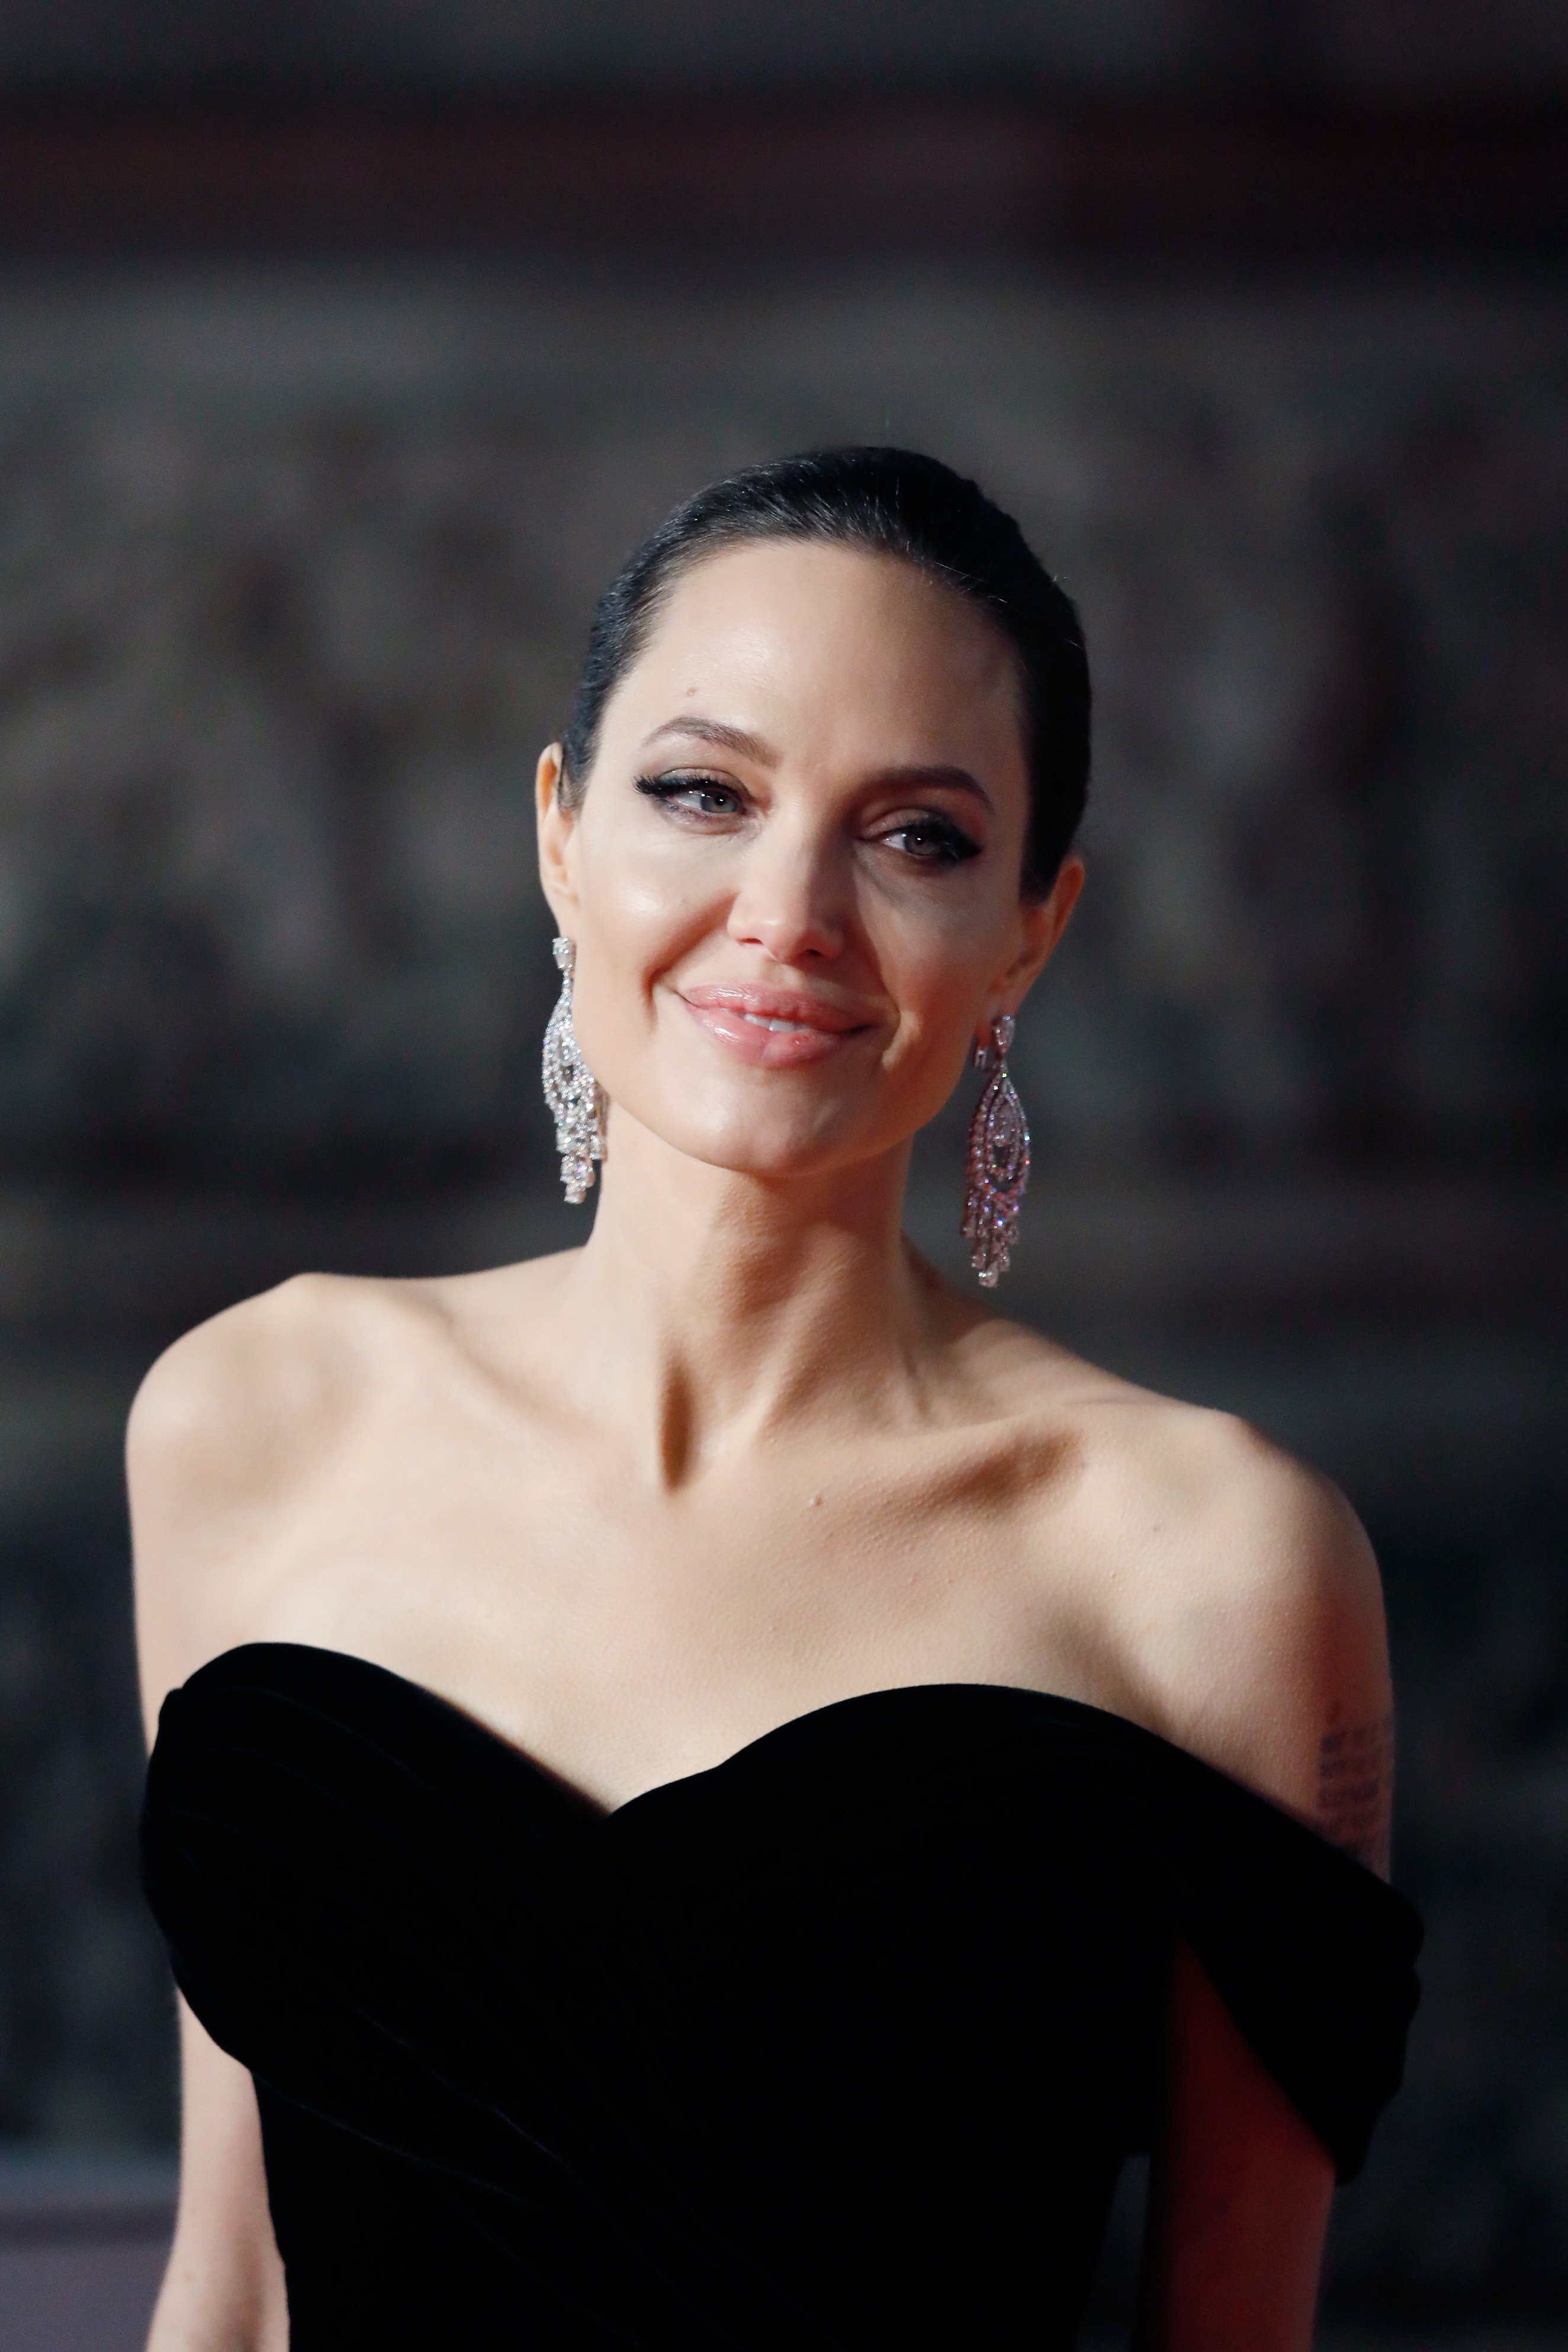 Angelina Jolie attends the EE British Academy Film Awards (BAFTA) on February 18, 2018, in London, England. | Source: Getty Images.